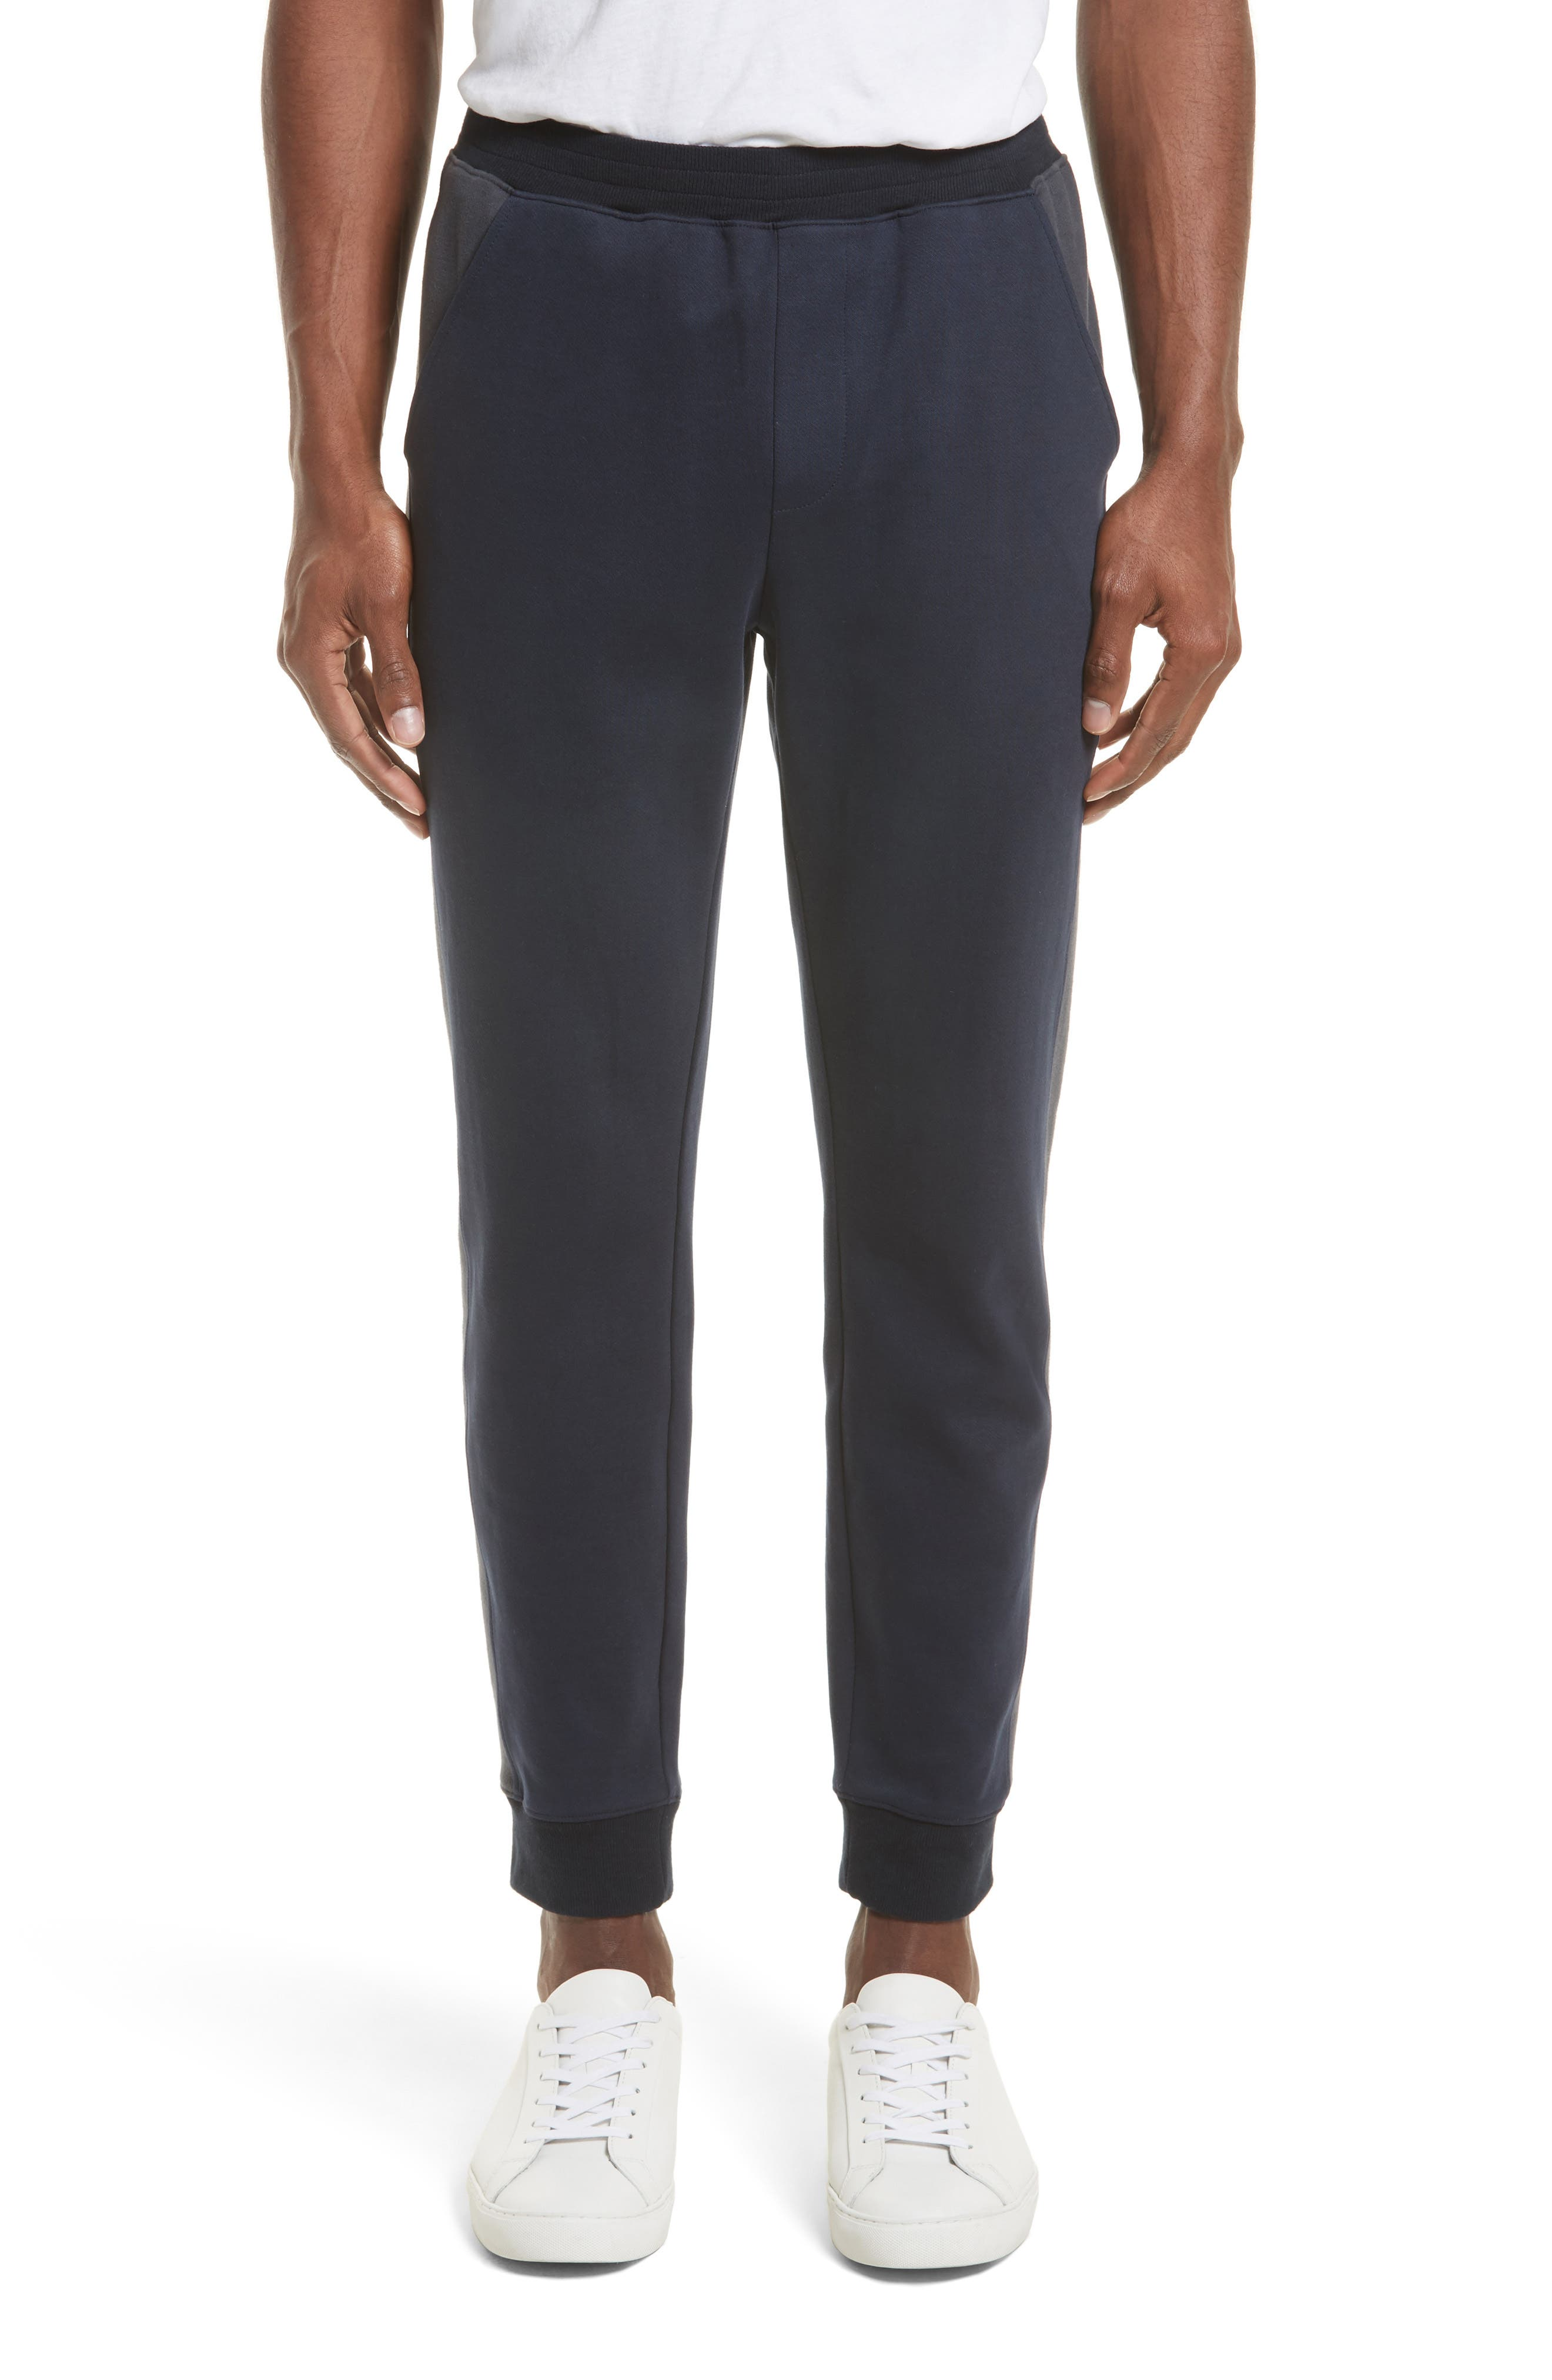 Alternate Image 1 Selected - ATM Anthony Thomas Melillo Double Knit Jogger Pants